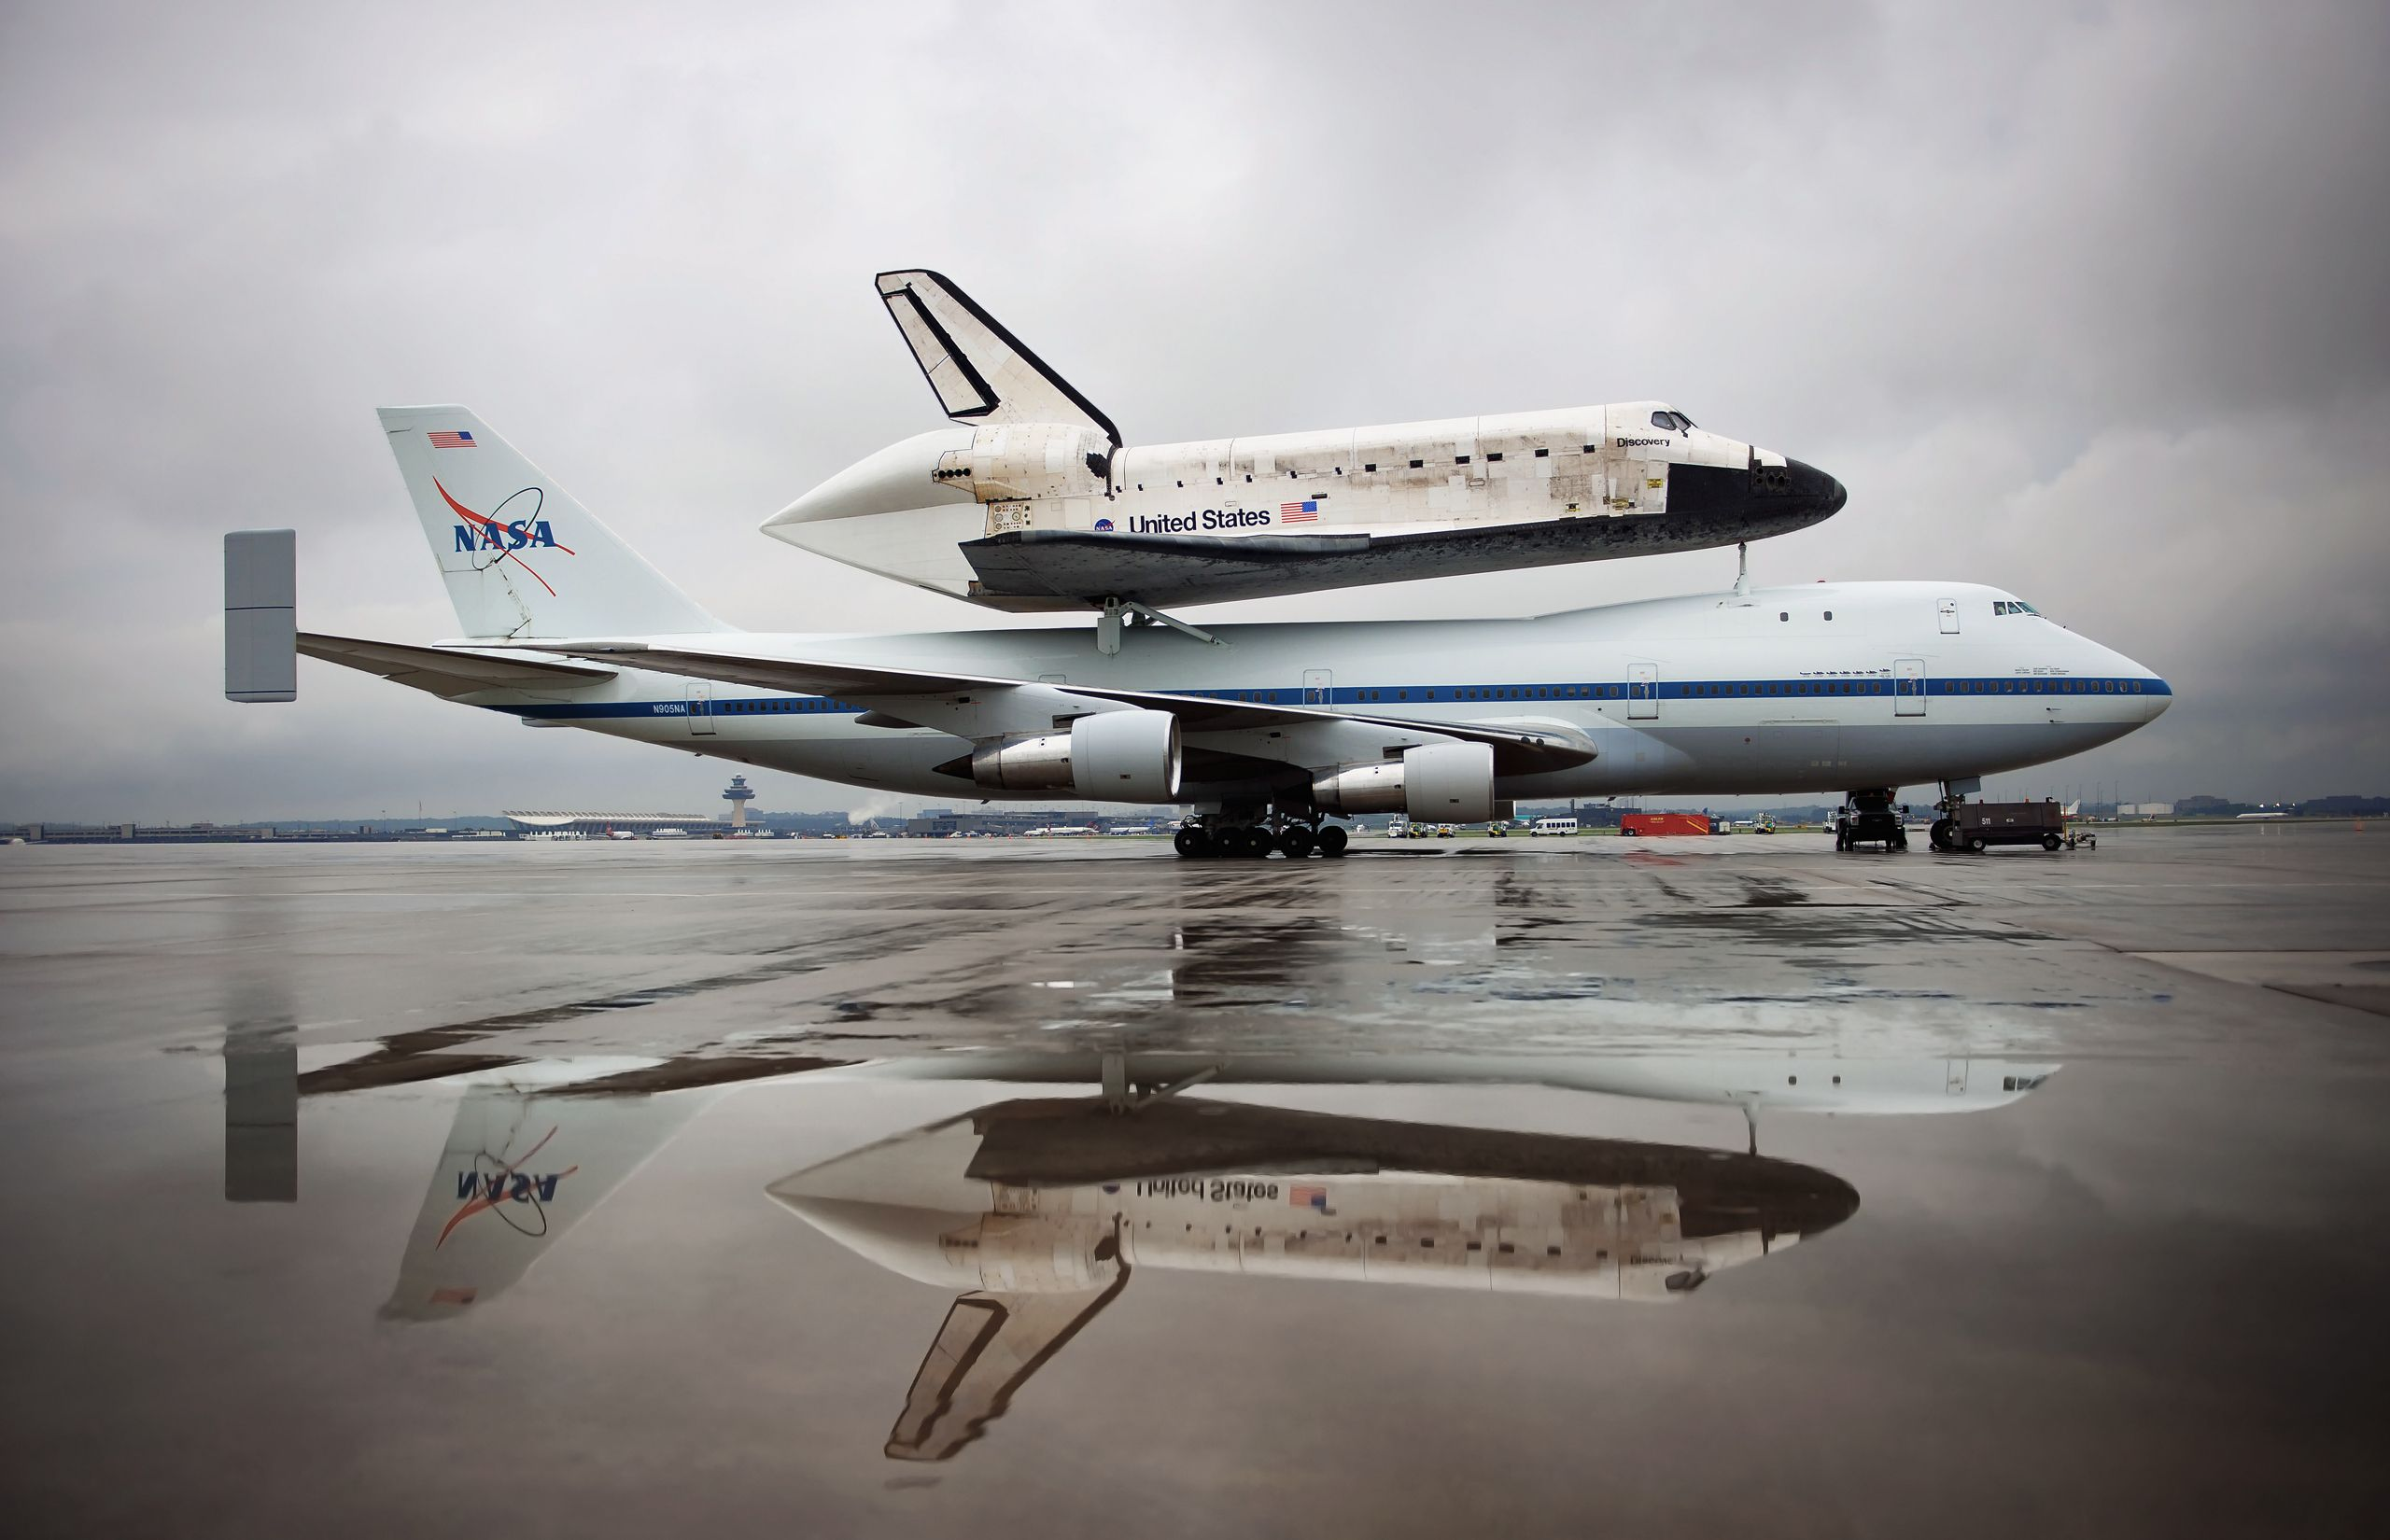 Shuttle, Discovery, NASA, plane, airfield, pool, reflection